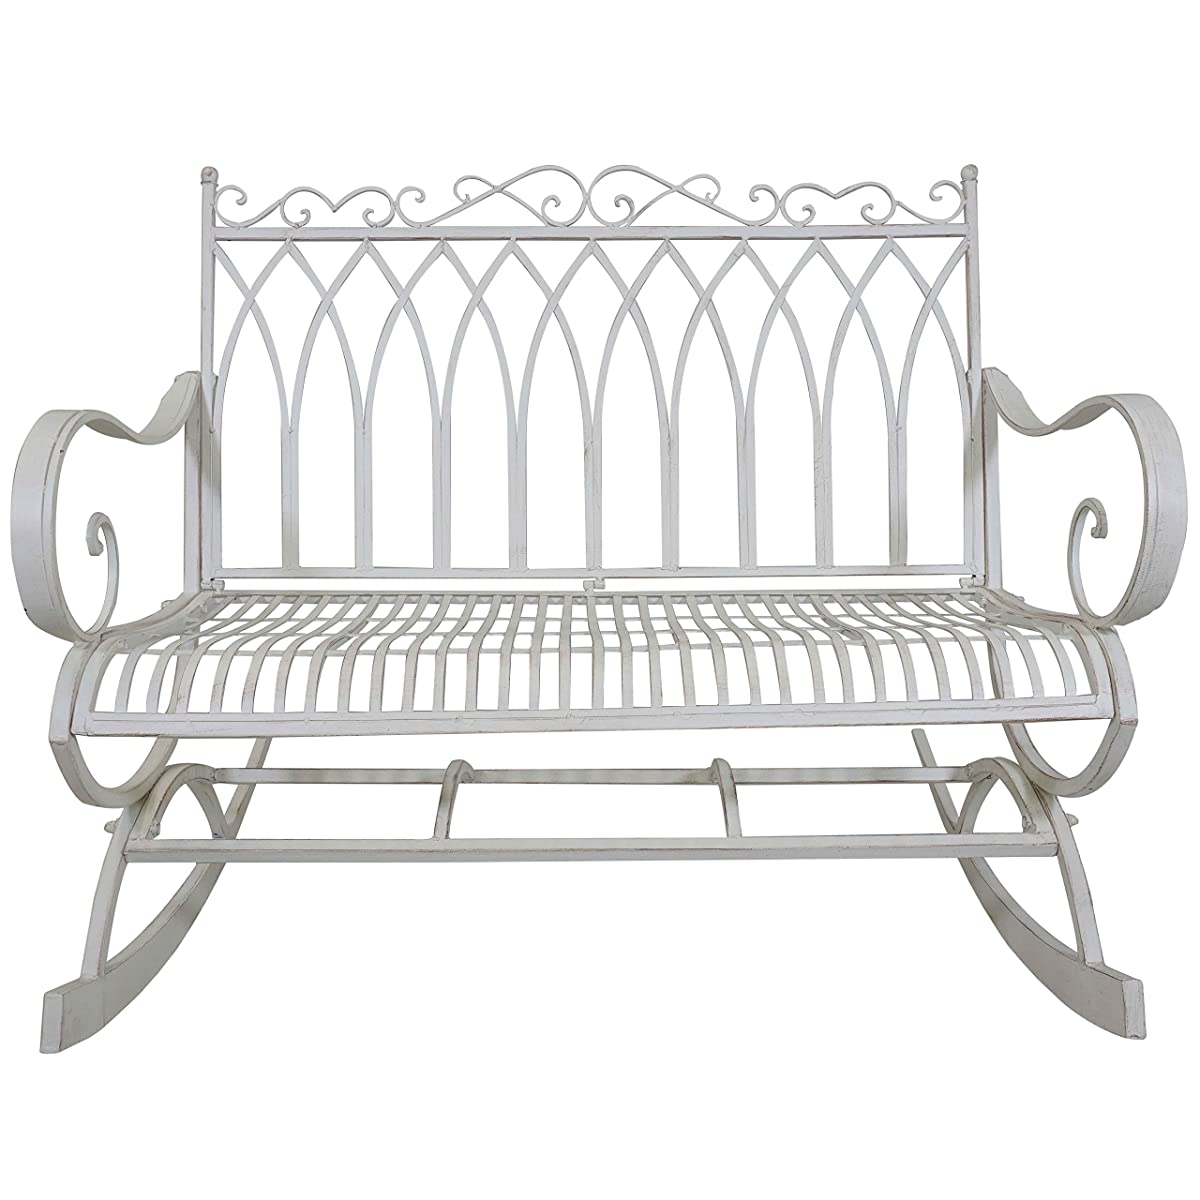 Titan Outdoor Metal Rocking Bench White Porch Patio Garden Seat Deck Decor